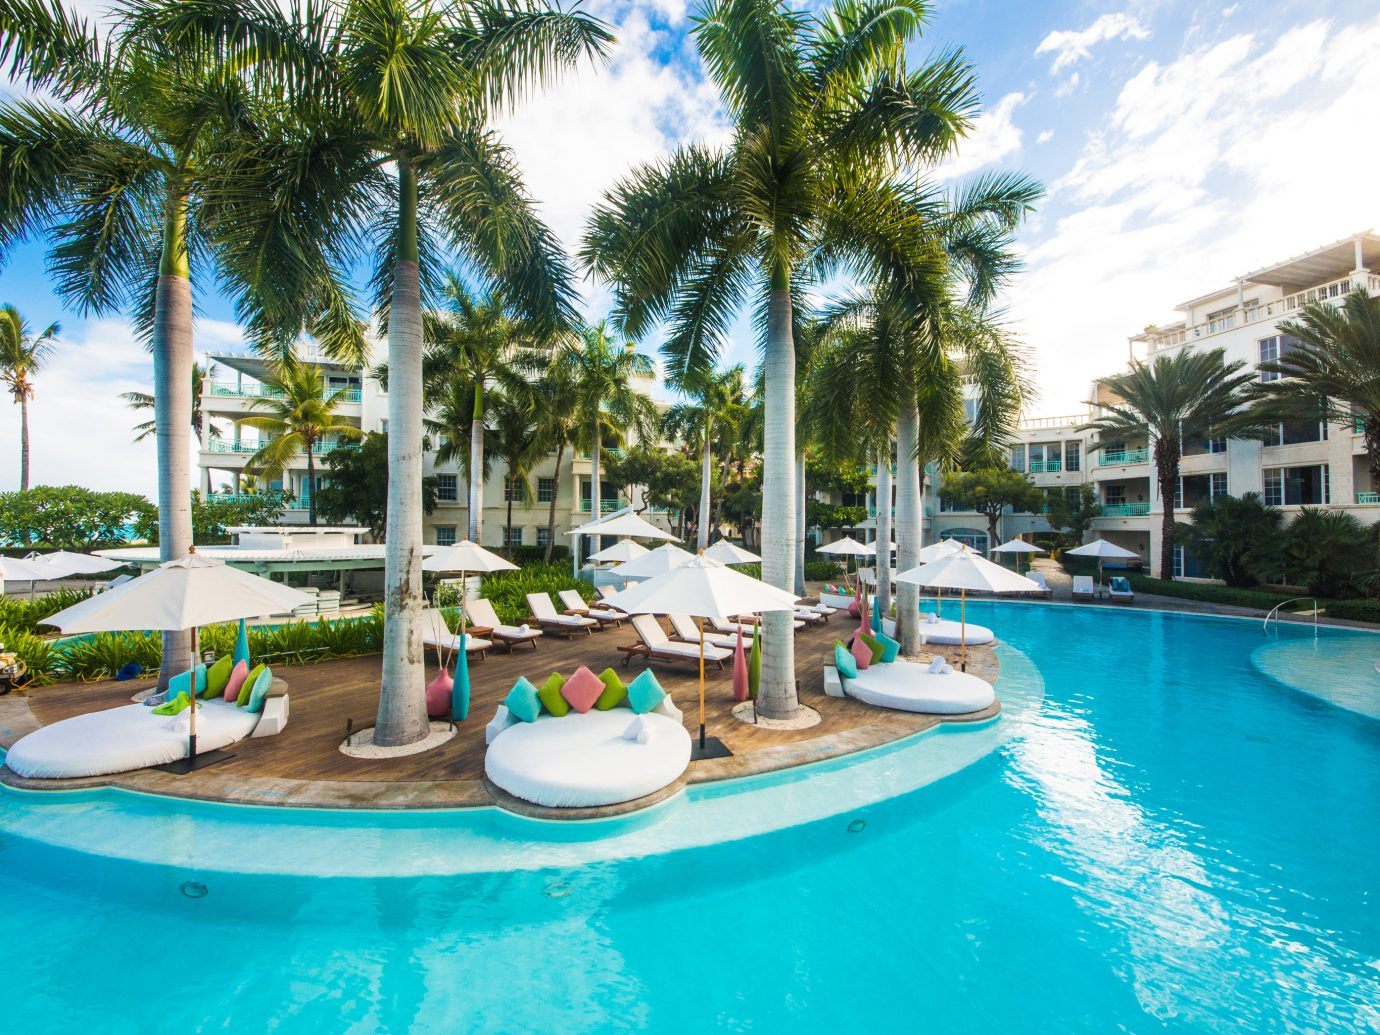 Trip Ideas tree outdoor water table sky Resort Pool swimming pool leisure property vacation Water park swimming caribbean arecales condominium estate resort town marina Villa blue palm lined